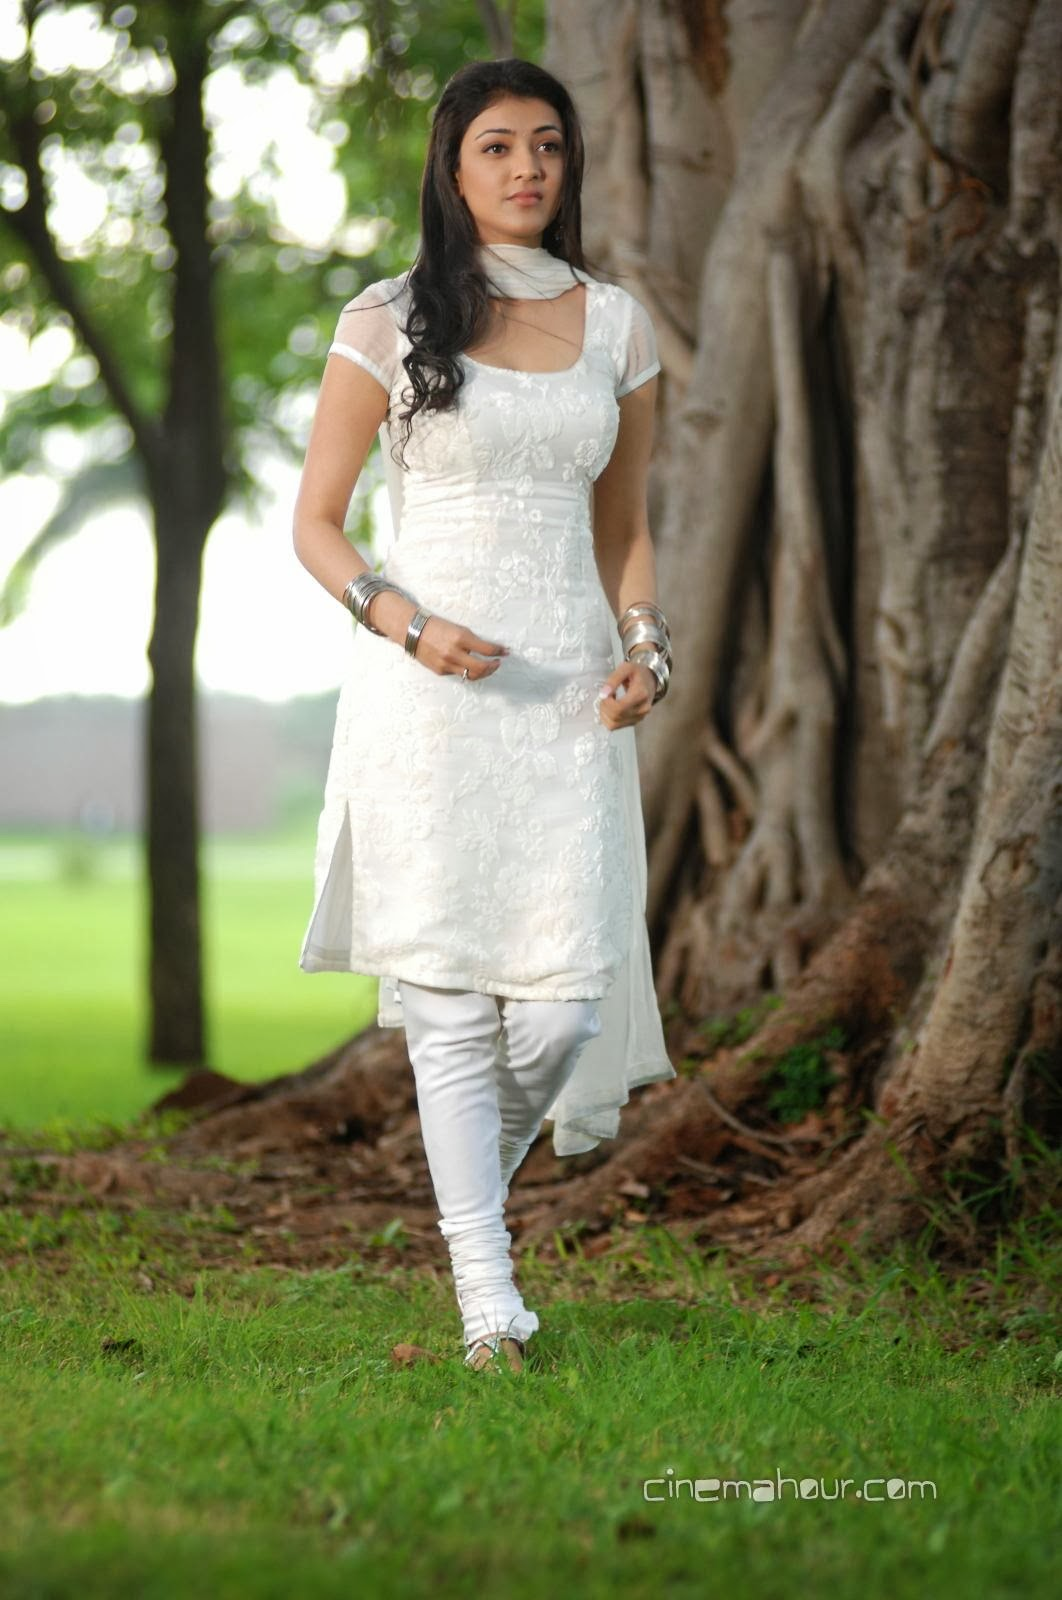 ssvmp3 : kajal agarwal latest-2014 , hot stills and spicy wallpapers